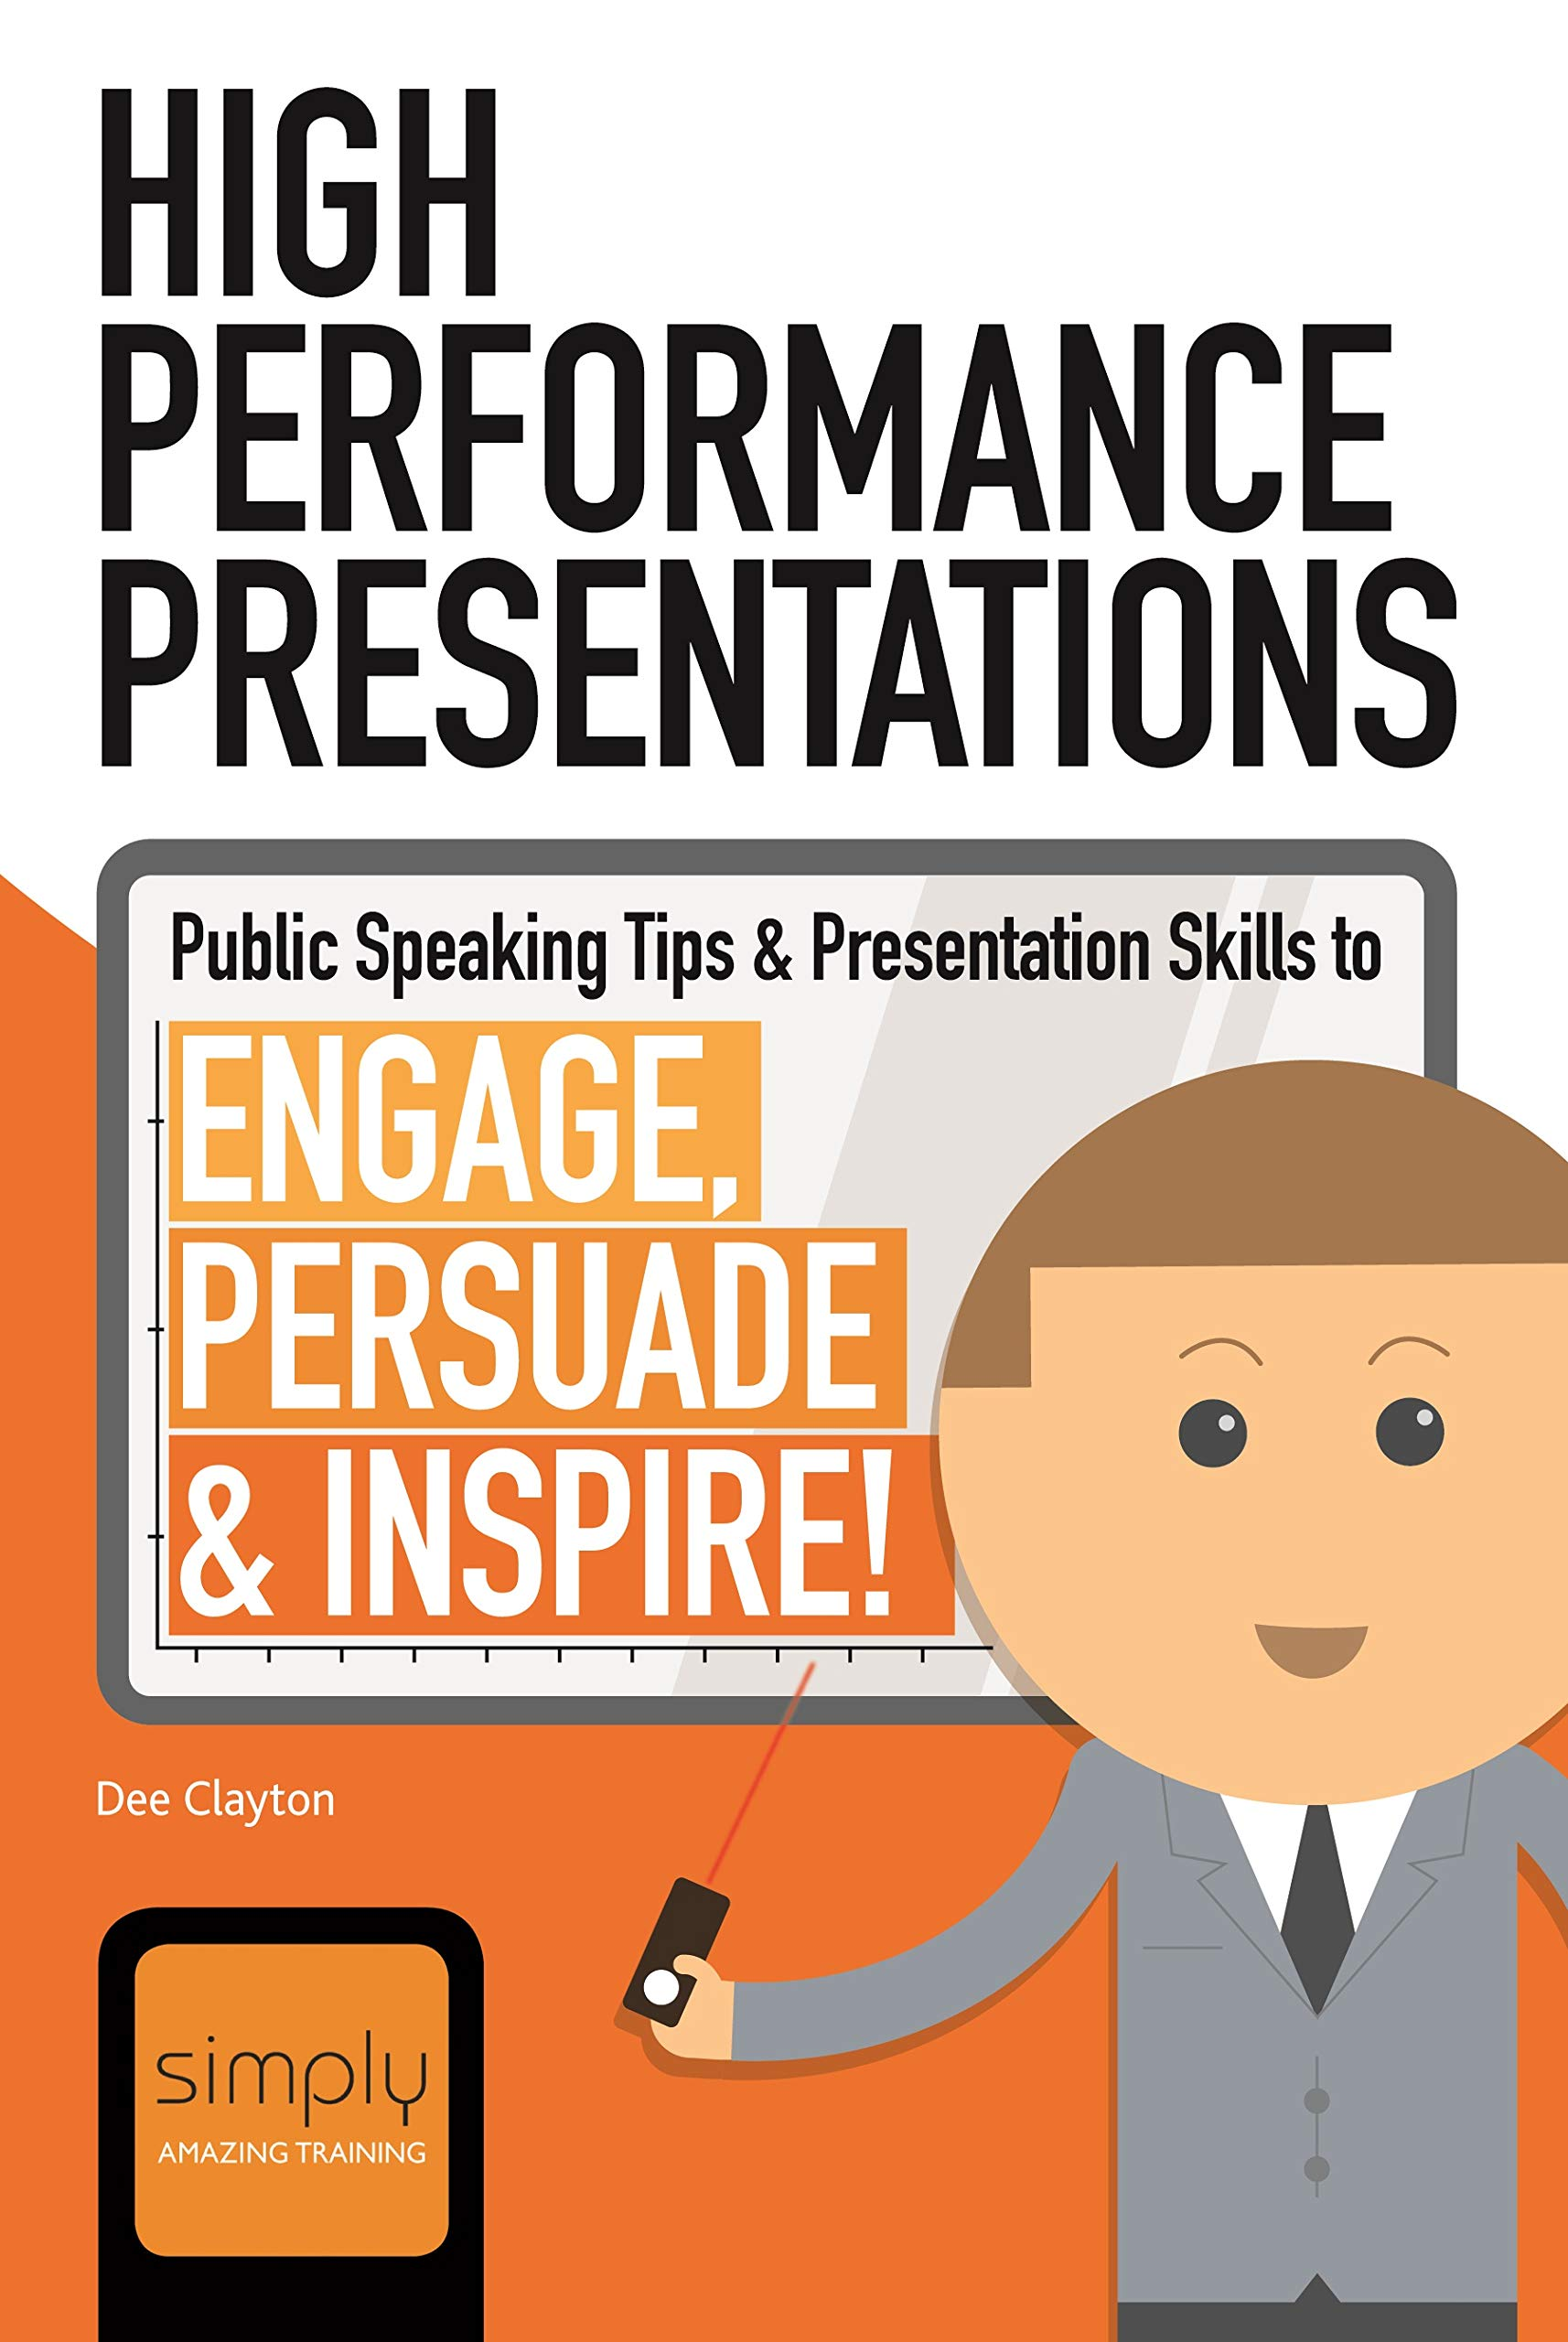 High Performance Presentations: Public Speaking Tips & Presentation Skills to Engage, Persuade and Inspire! (Business Communications Book 2)